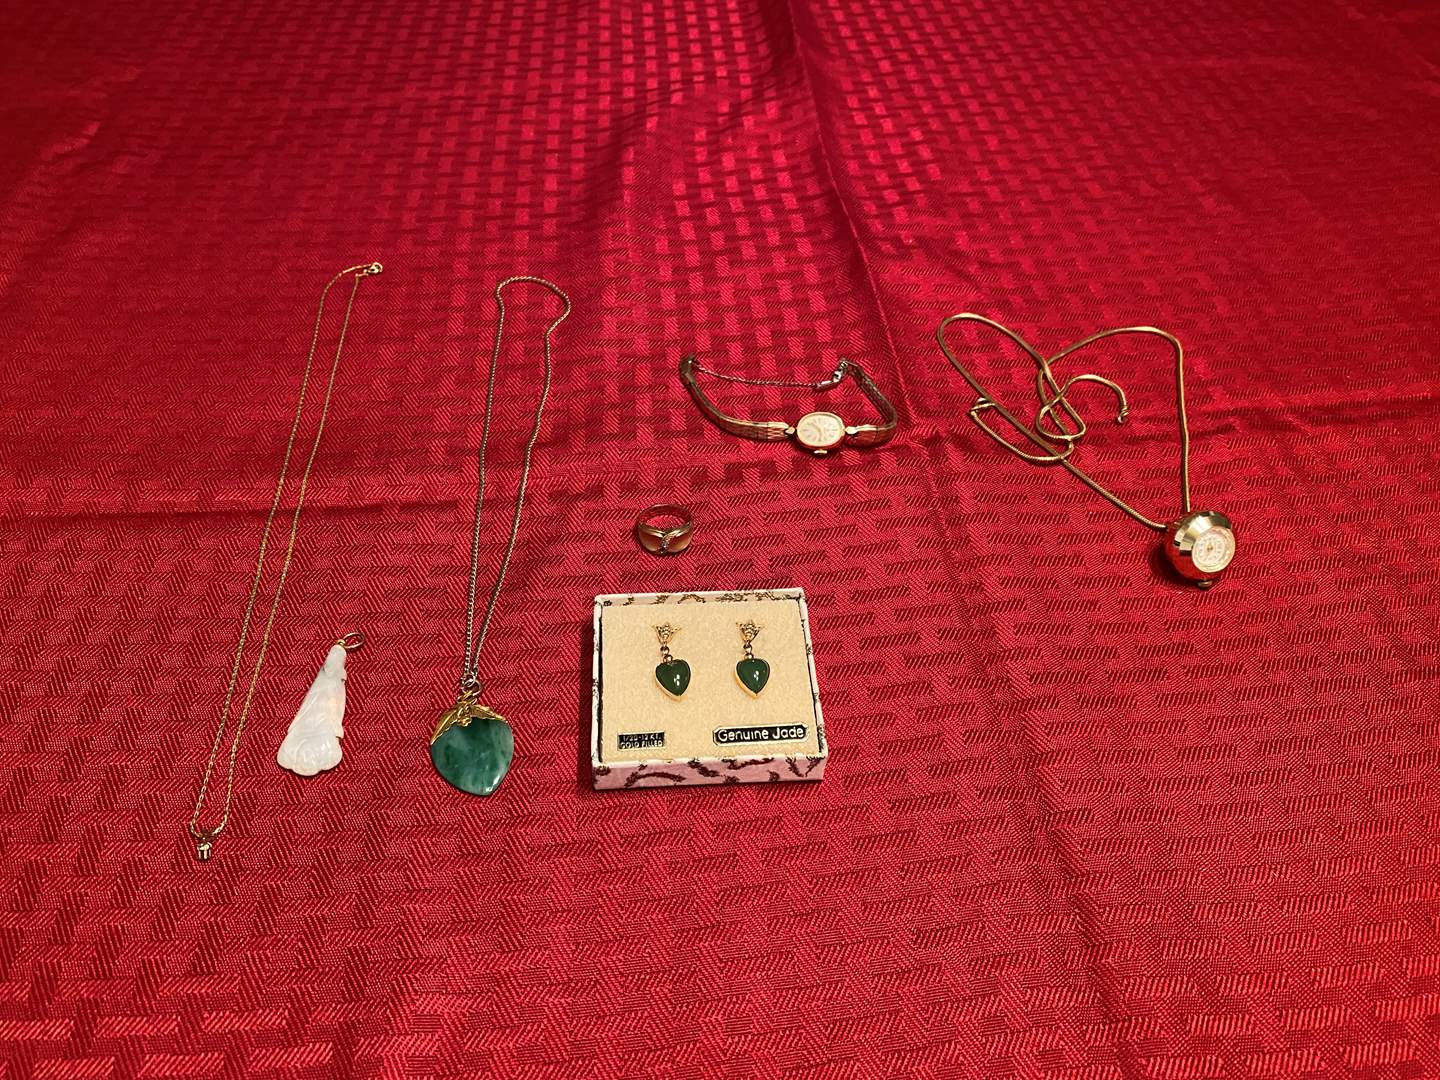 Lot # 286 - Gold Filled & Jade Necklace, Earrings, Gold Filled Ring, Gold Filled Watch & More. (main image)